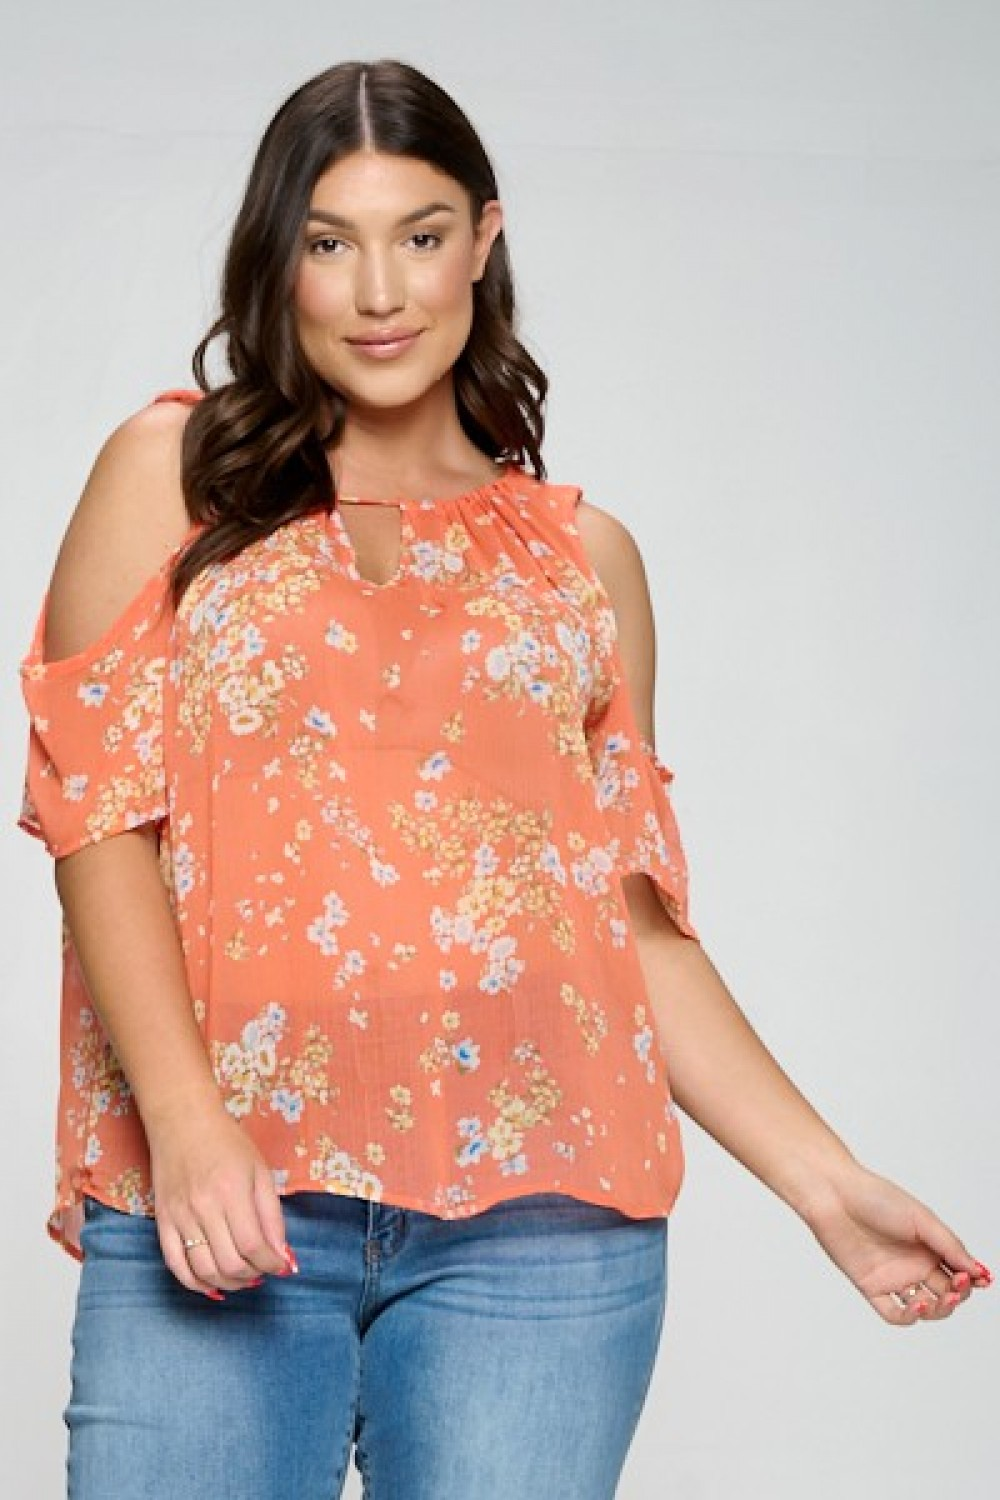 5TH1295<br/>Plus Size Soft Chiffon Flower Print Top.